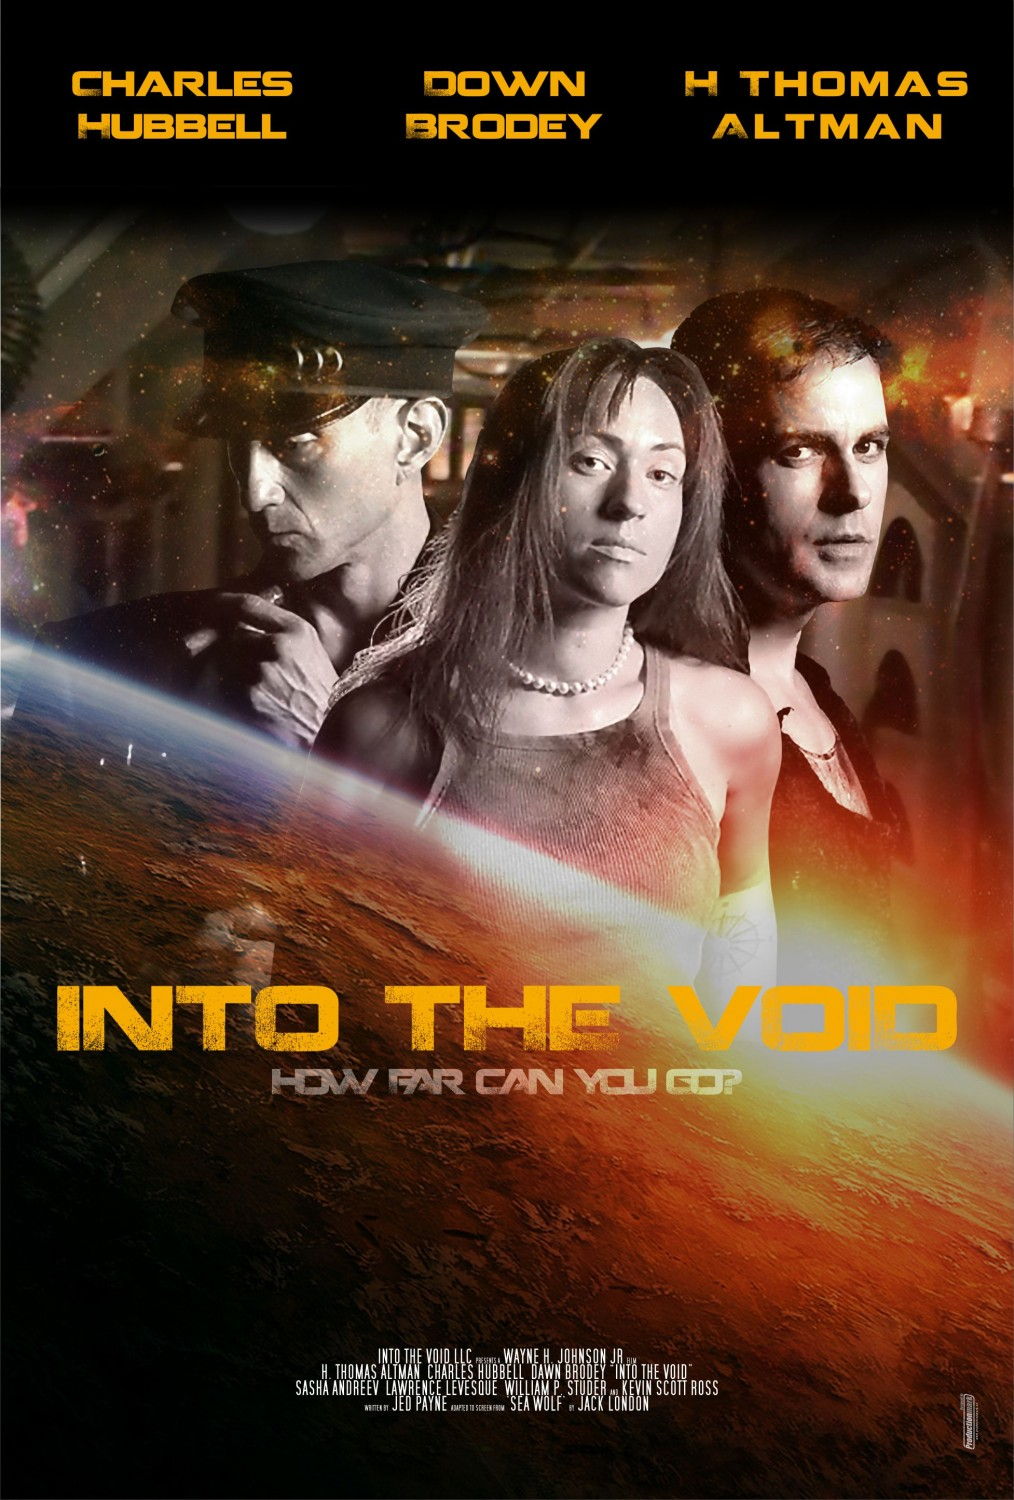 Productionmark-Services-Film-Poster-Design-Feature-Film-into-the-void